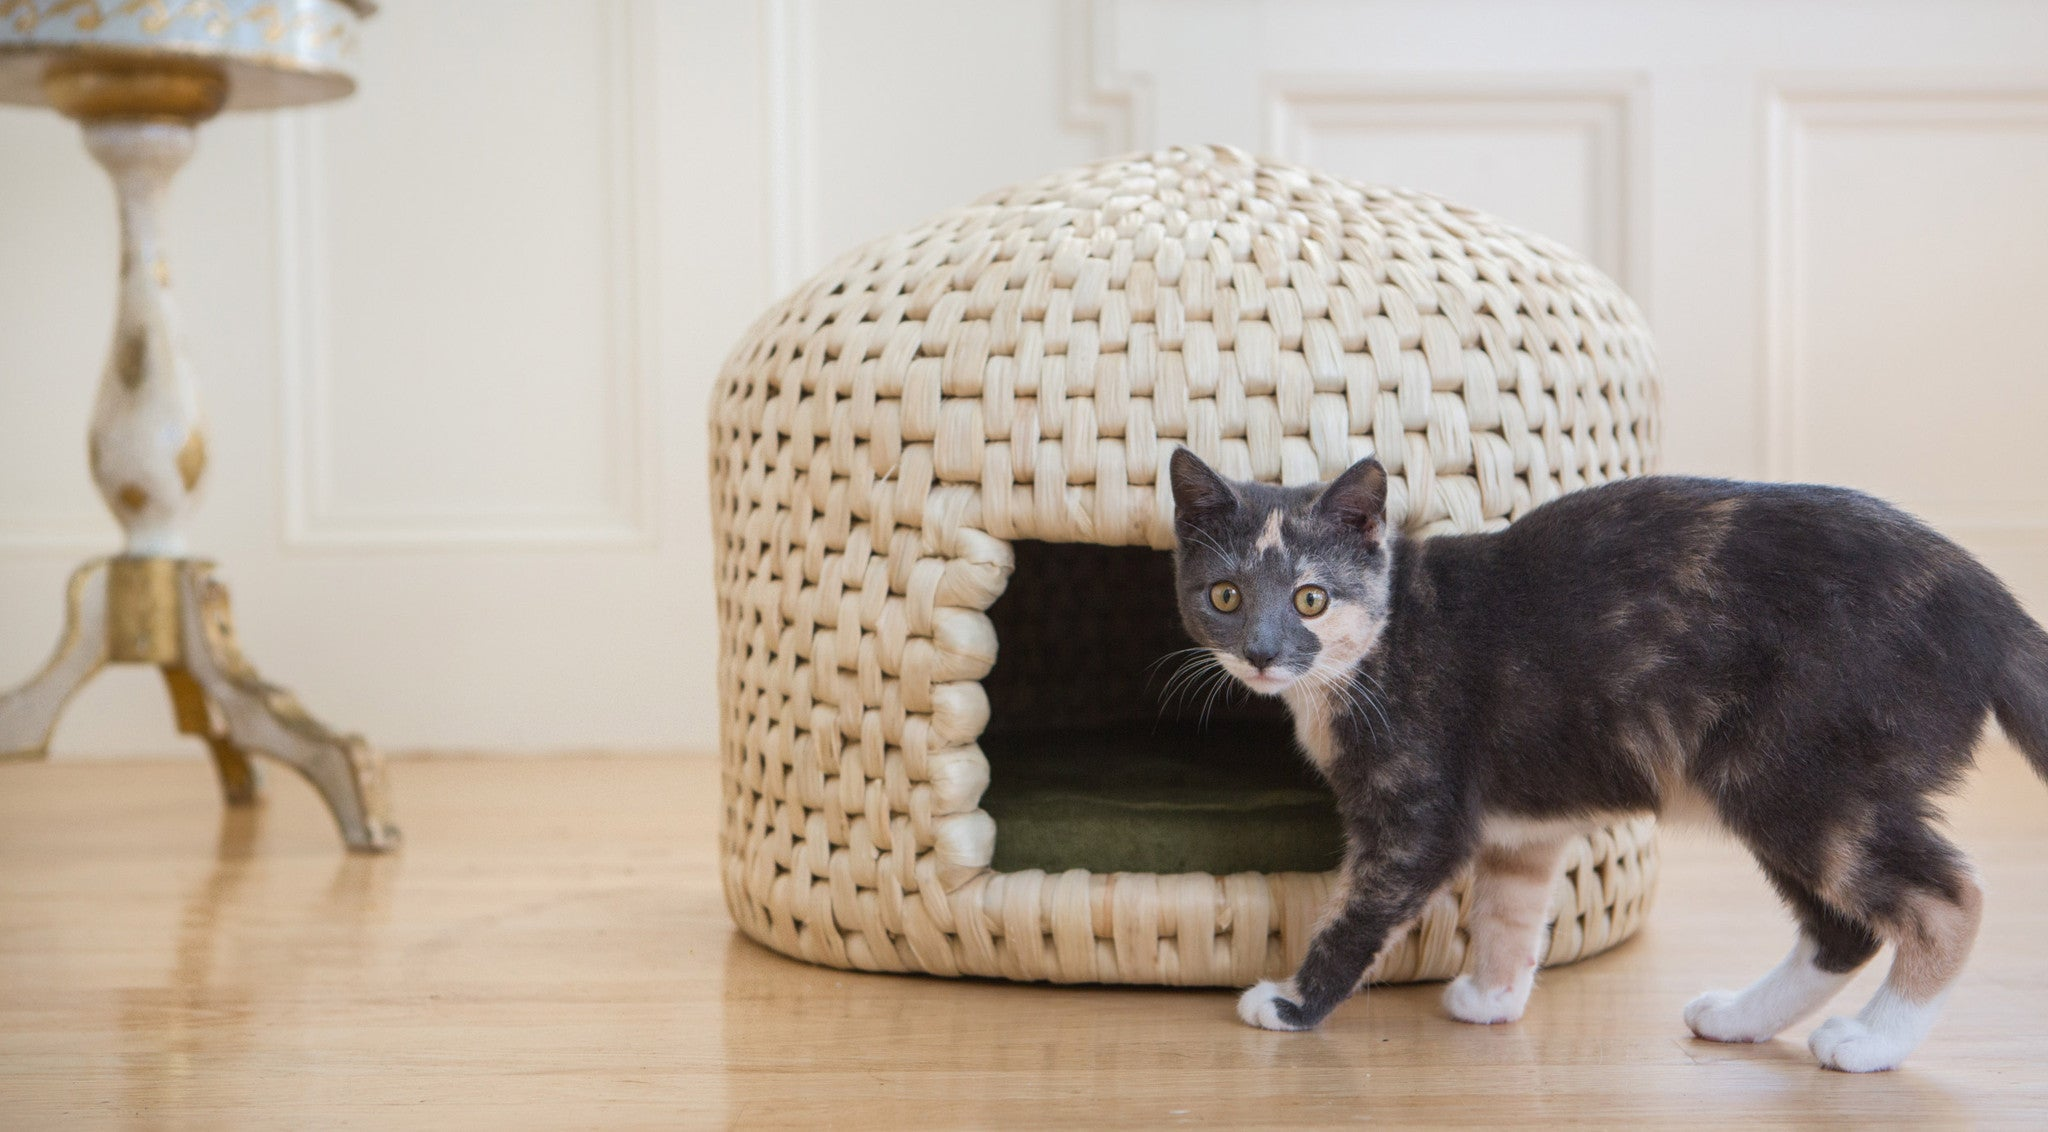 Kitten with neko chigura eco friendly handwoven straw cat bed house